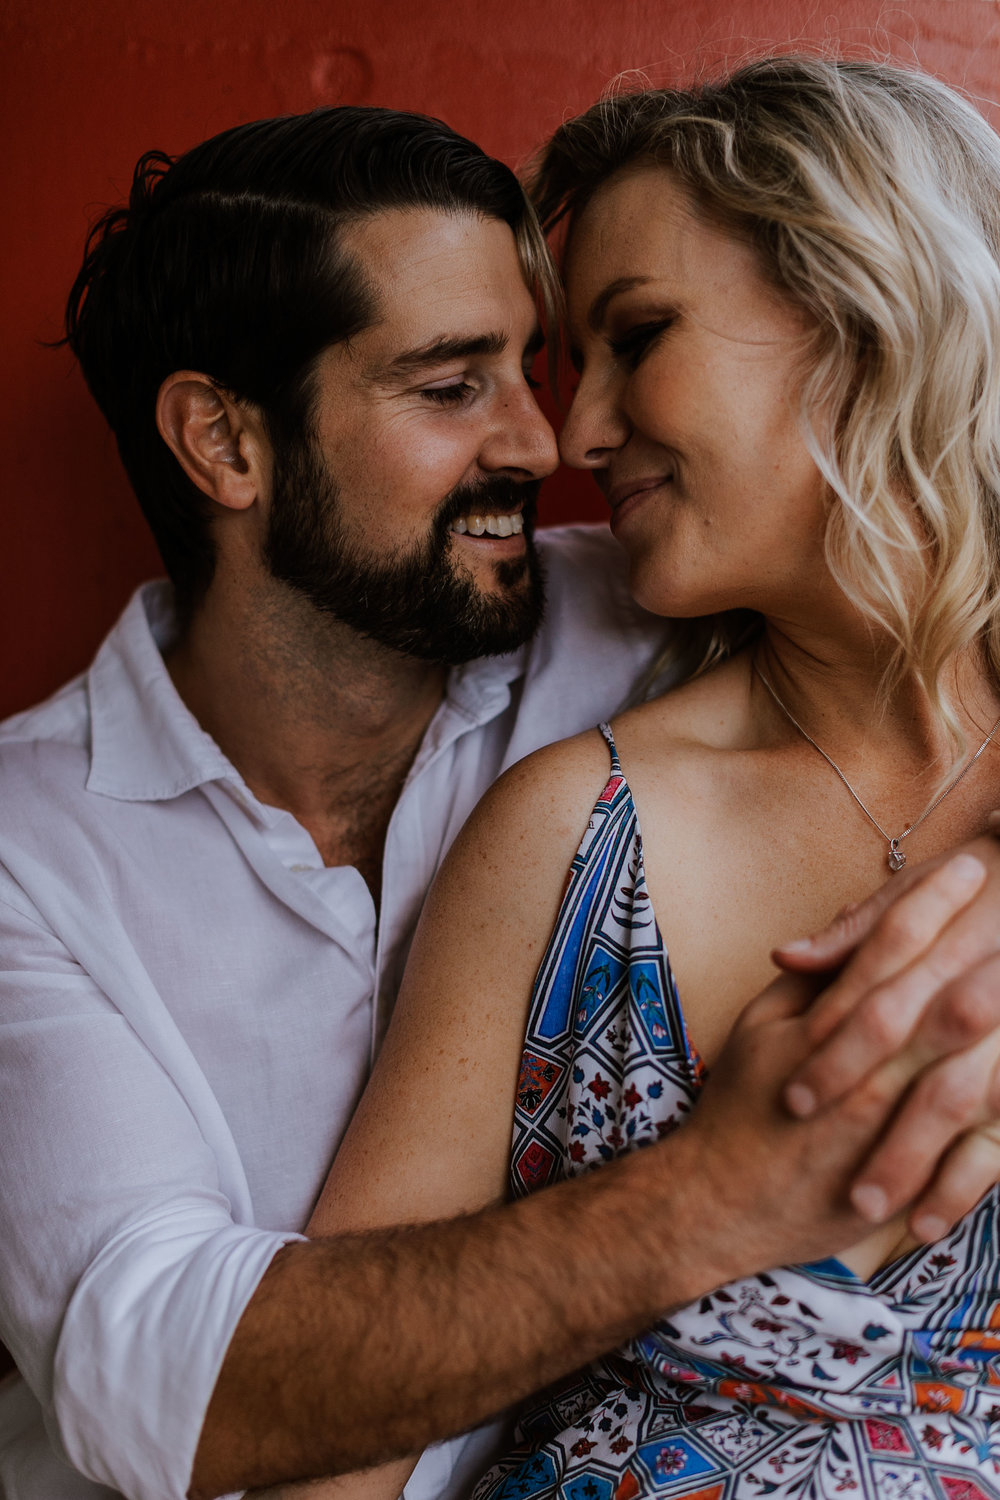 catherine_david_newcastle_city_stockton_gez_xavier_mansfield_photography_wedding_photography_engagement_hunter_valley_sydney_wedding_best_wedding_photography_2017-37.jpg